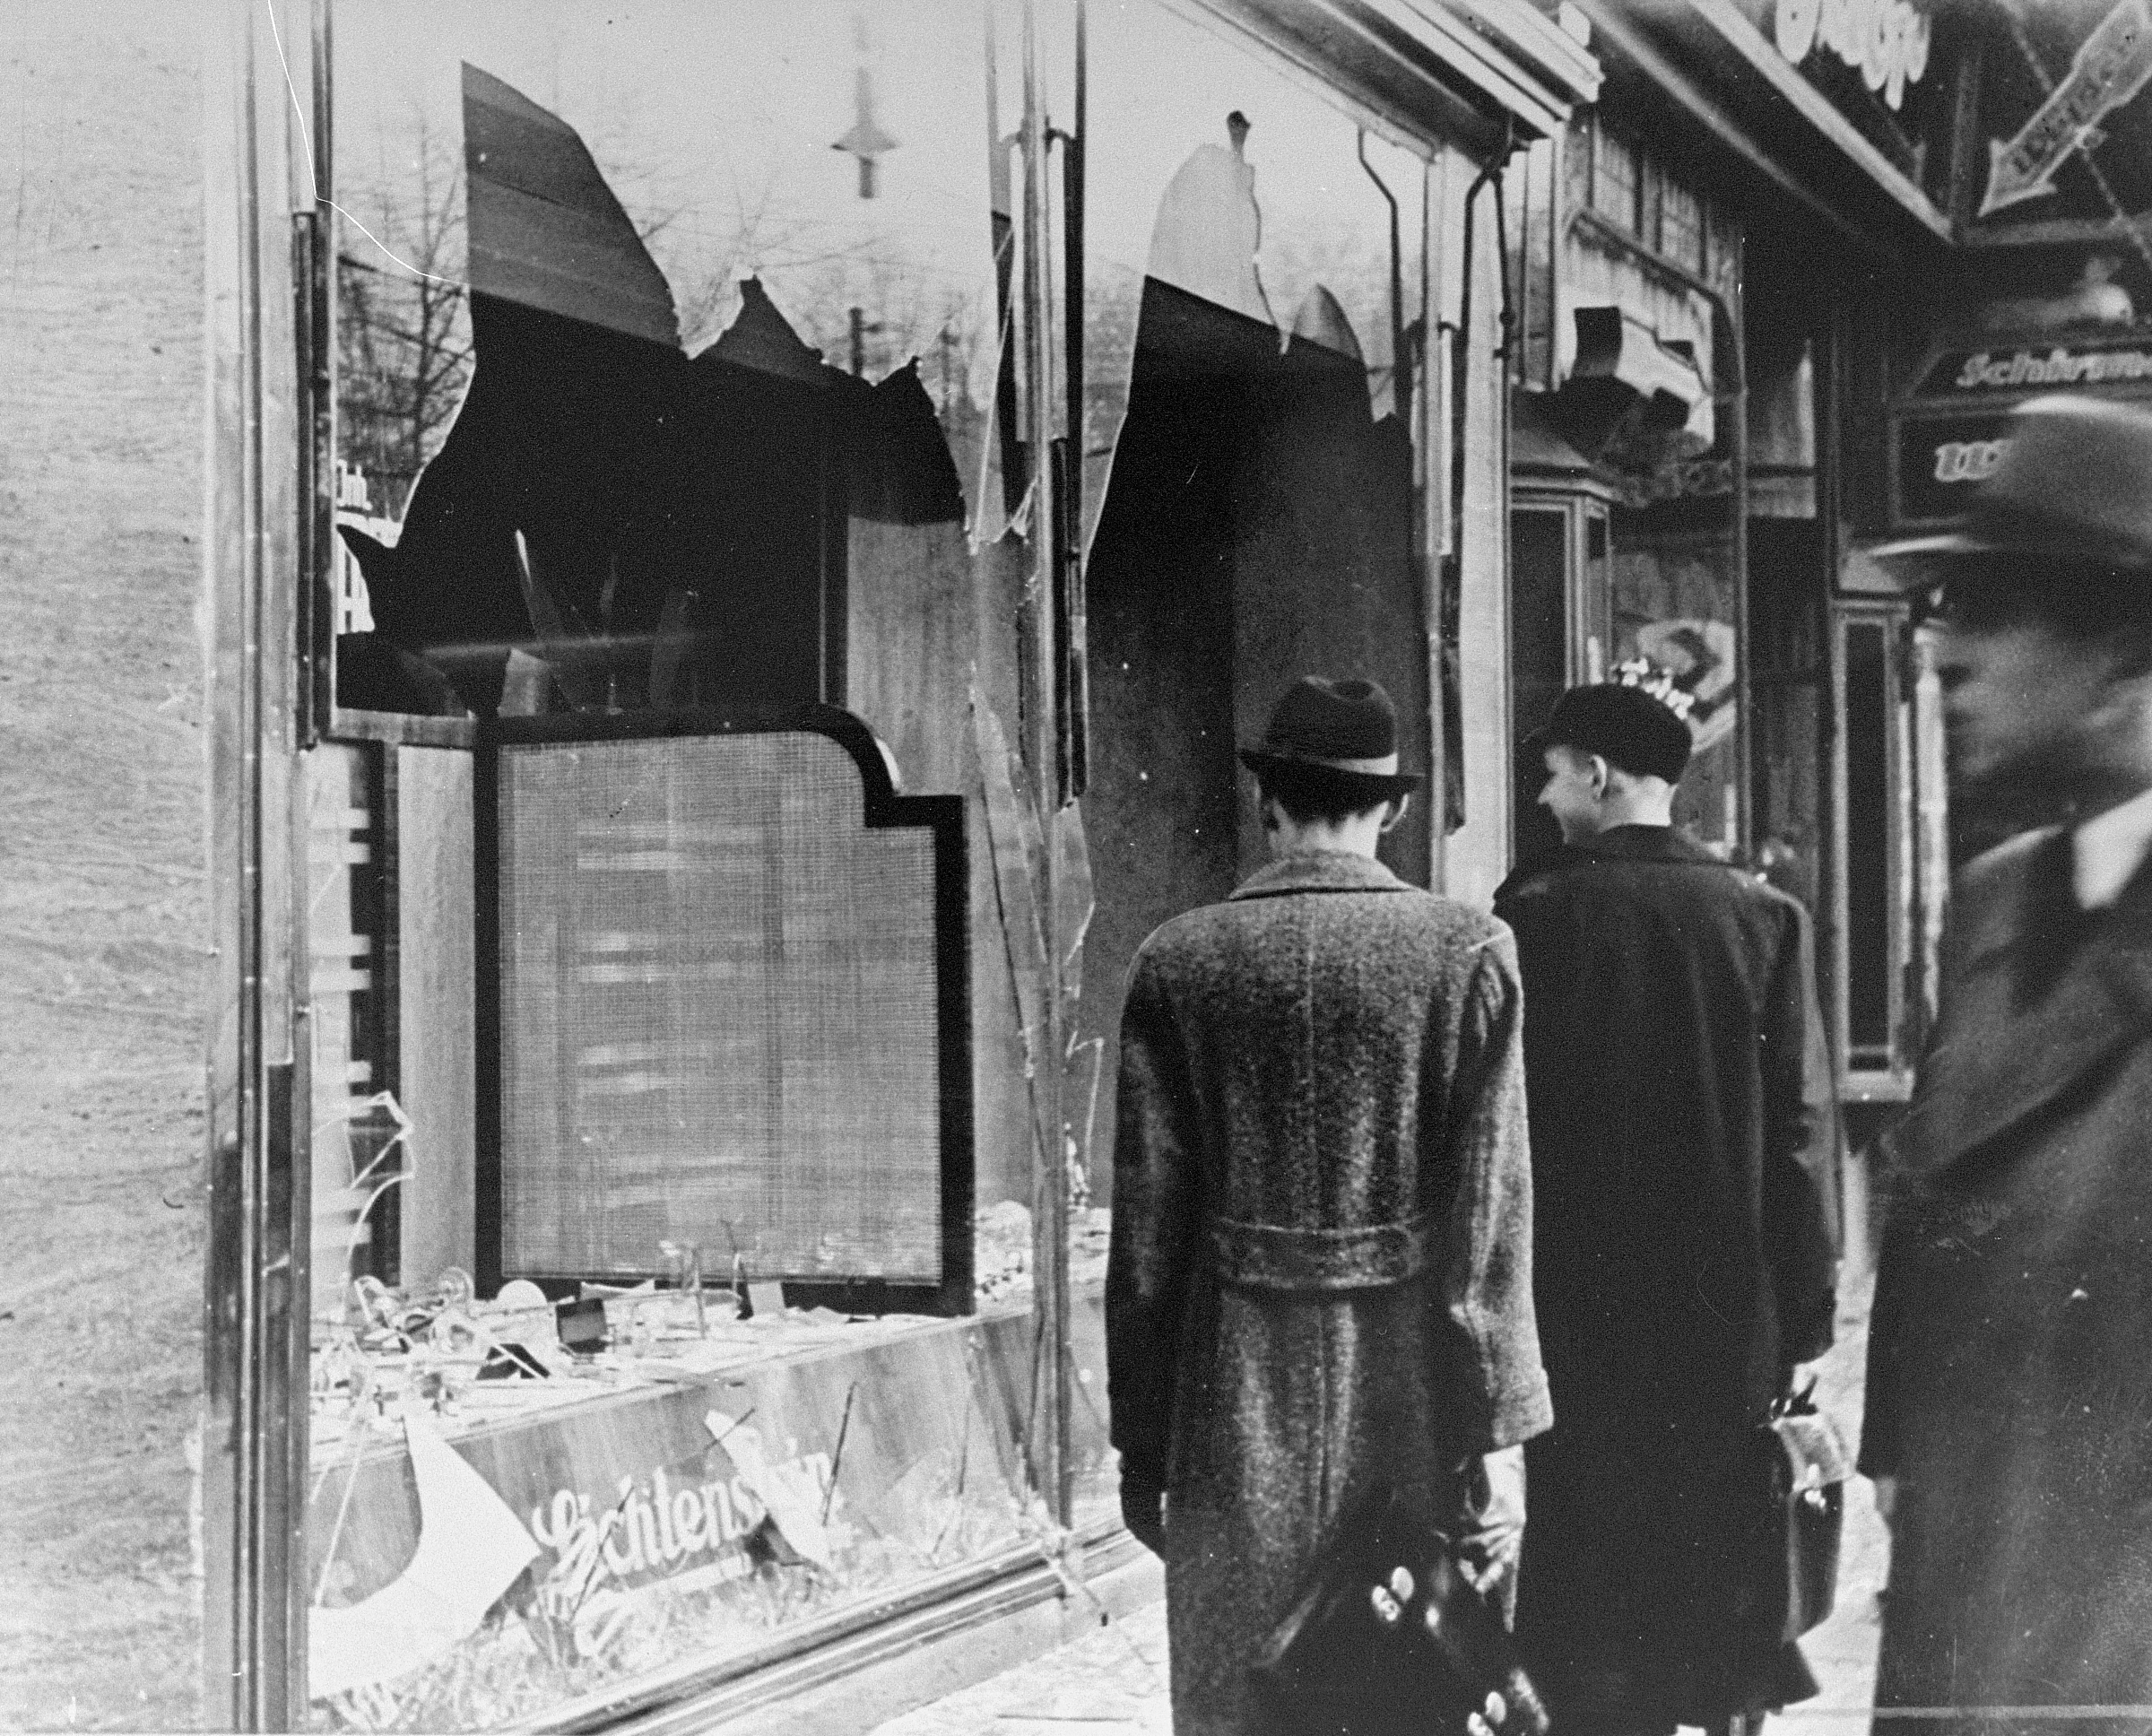 http://upload.wikimedia.org/wikipedia/en/2/2b/Germans_walk_by_a_Jewish_business_destroyed_on_Kristallnacht.jpg